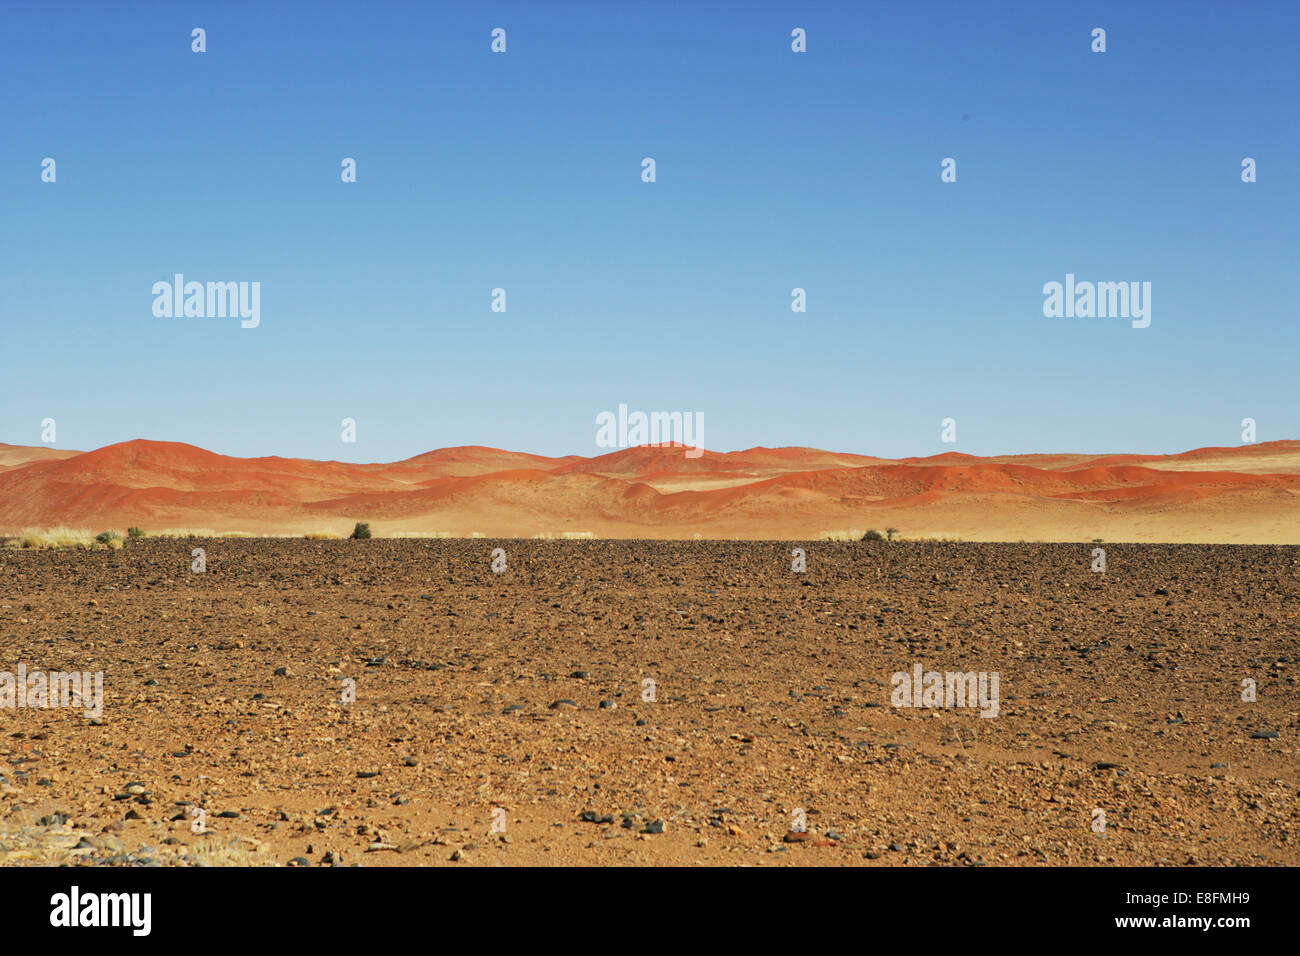 Paysage de dunes de sable, Naukluft National Park, Sossulsvlei, Namibie Photo Stock